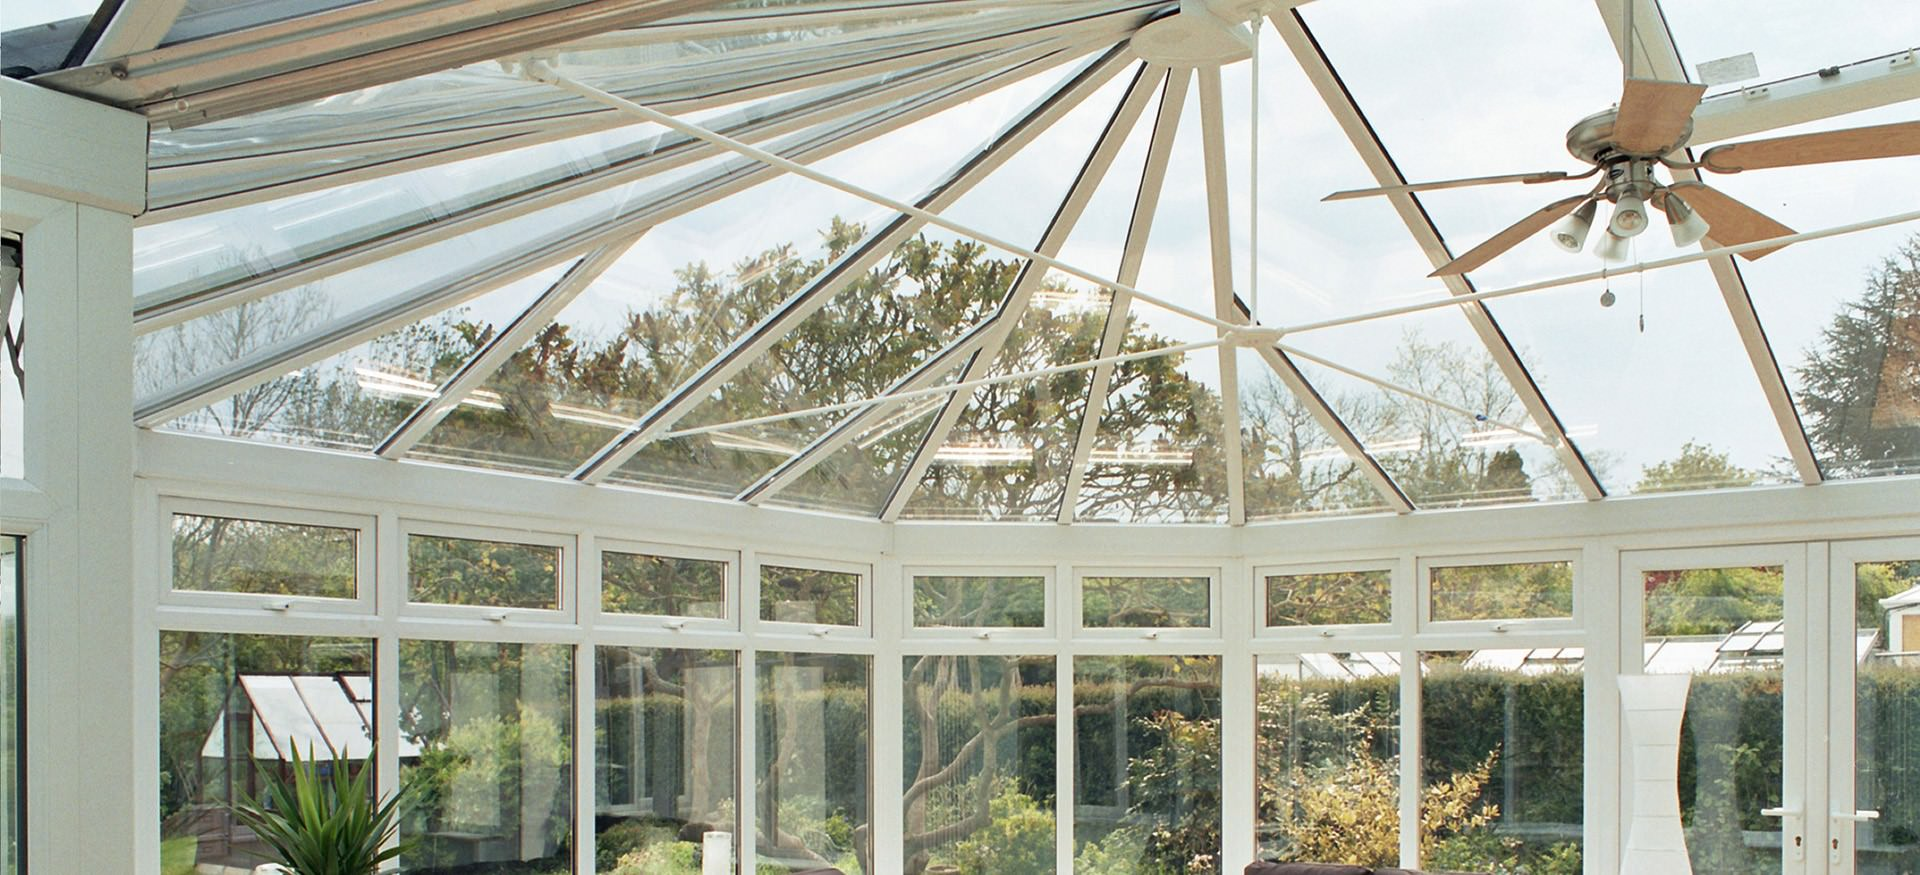 Conservatory Roofs Essex | Conservatory Roof Prices Essex